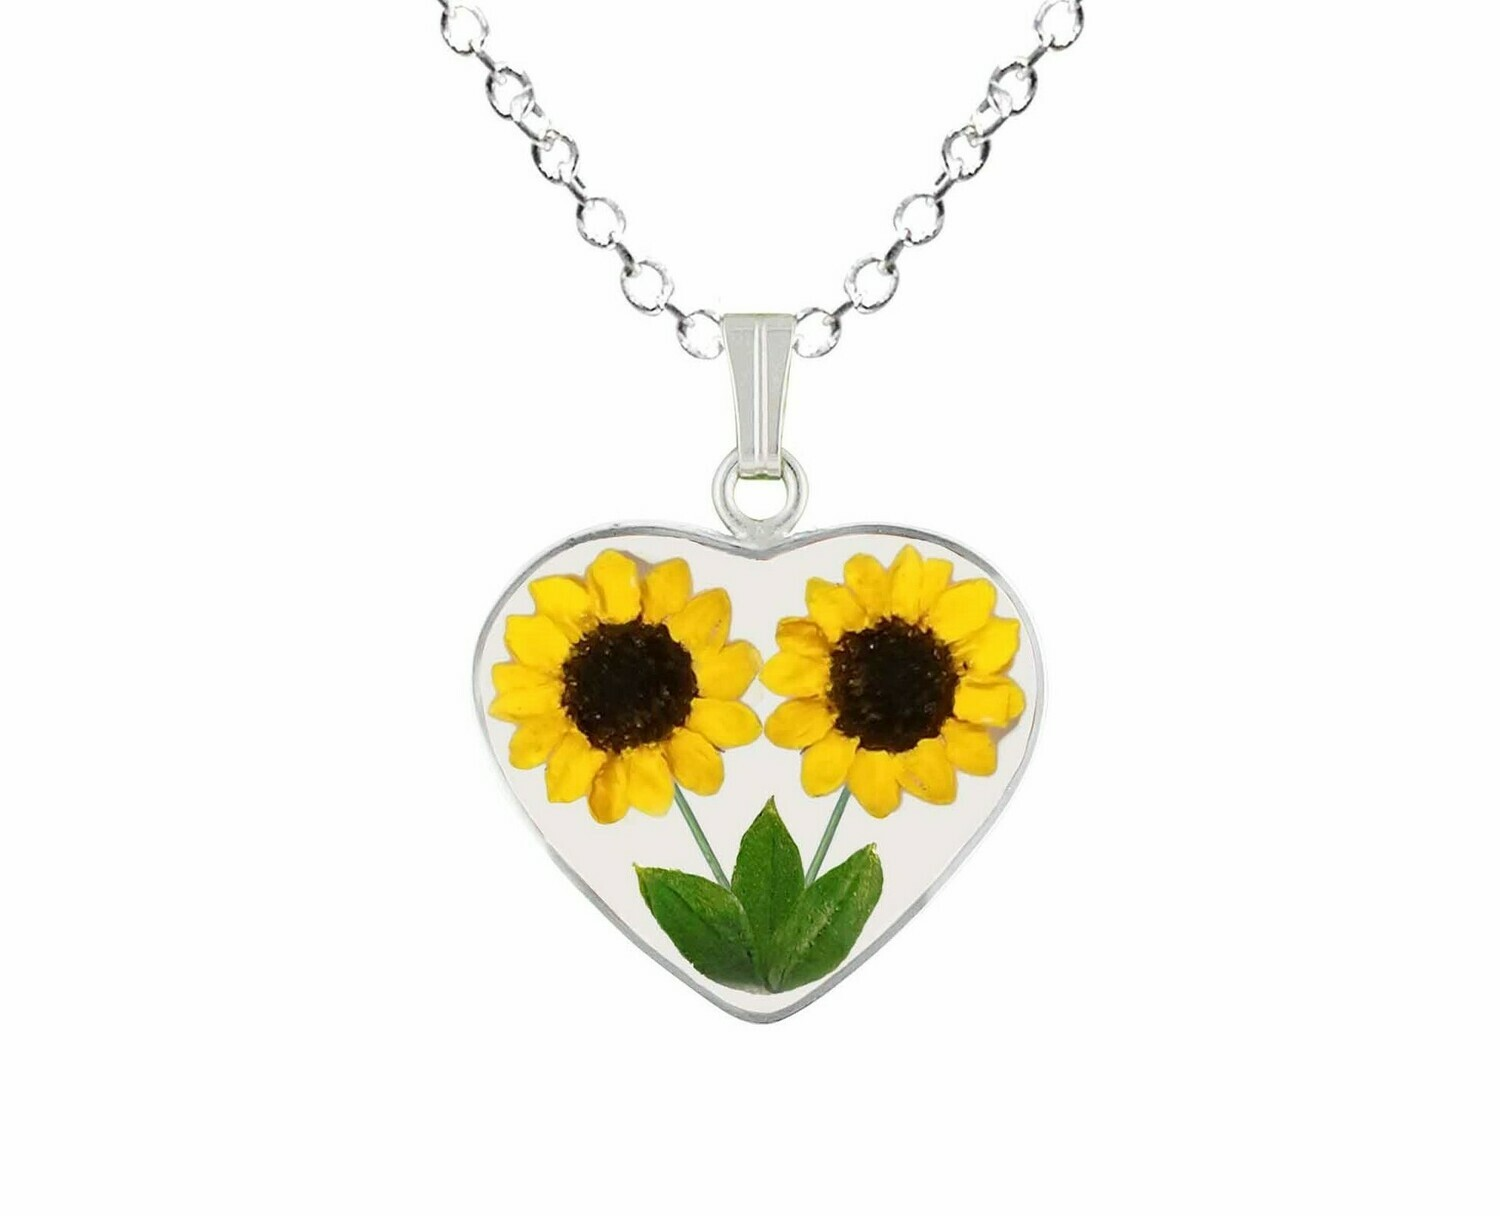 Sunflower Necklace, Medium Heart, Transparent